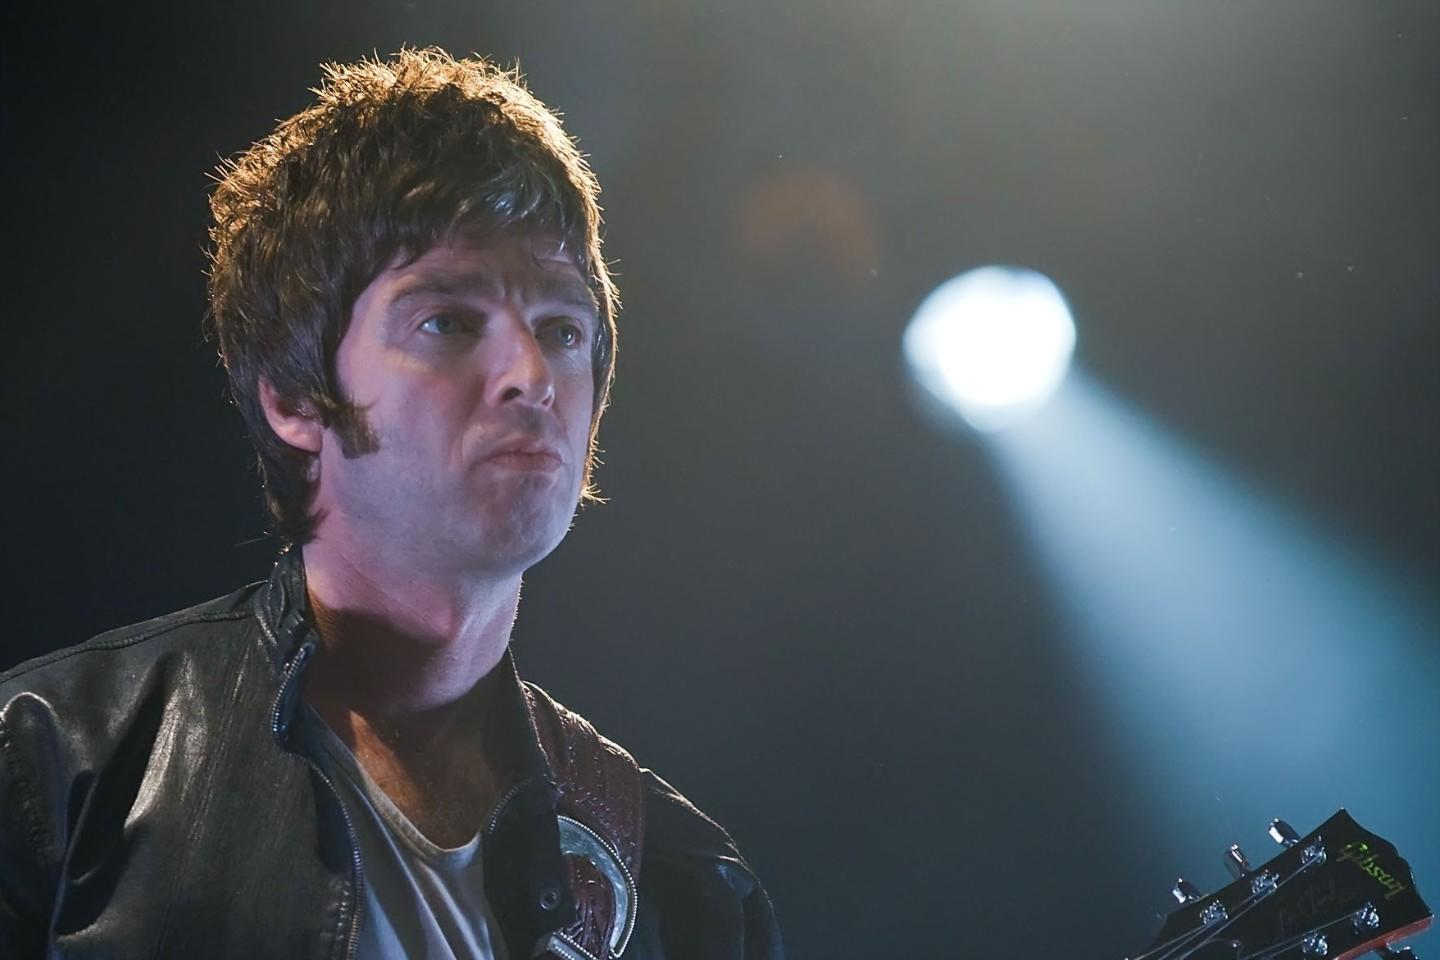 noel gallagher 2018 Noel Gallagher Tickets | Noel Gallagher Tour 2018 Tickets   viagogo noel gallagher 2018